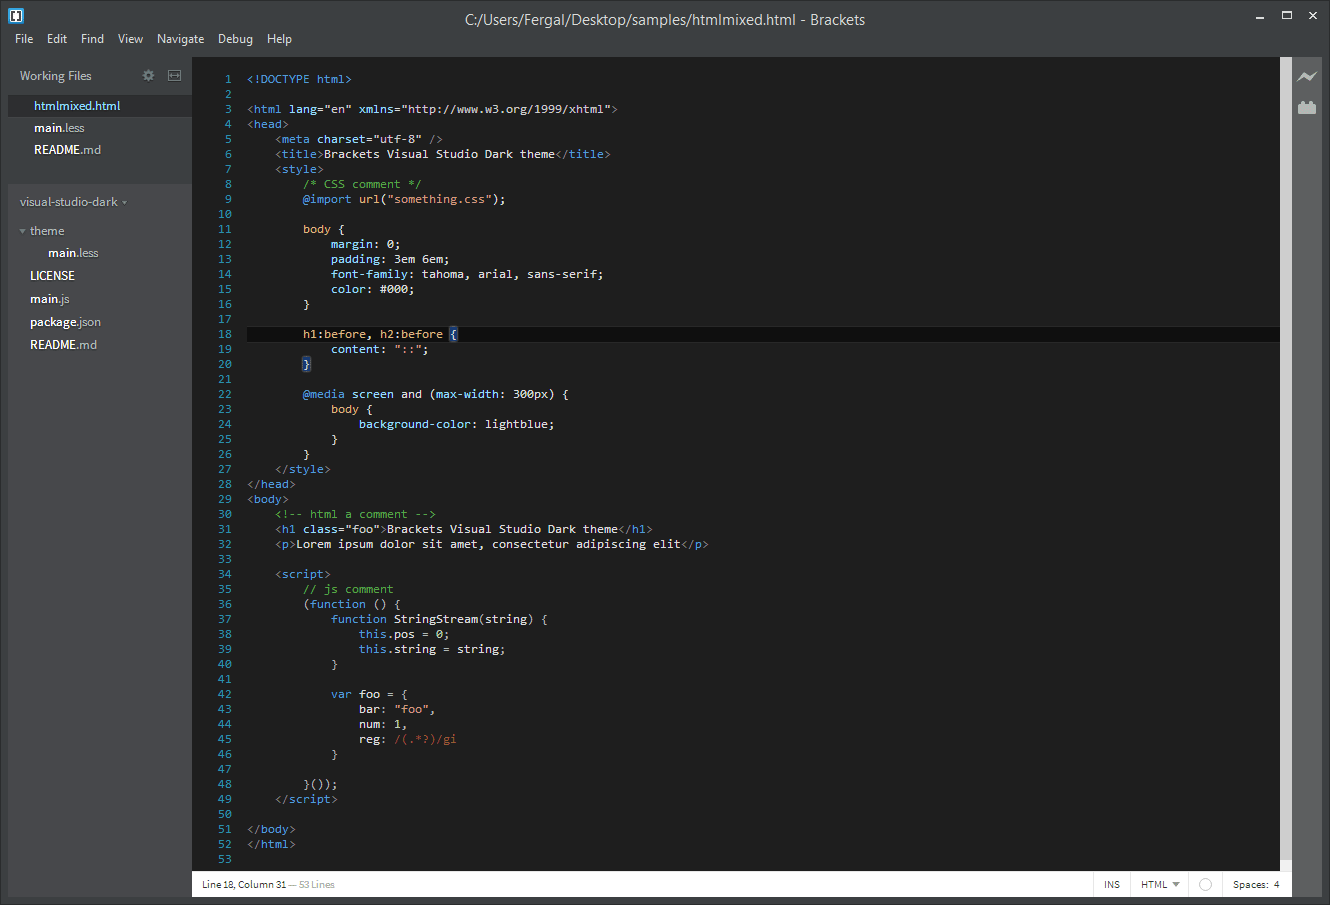 Visual Studio Dark v1.1.3